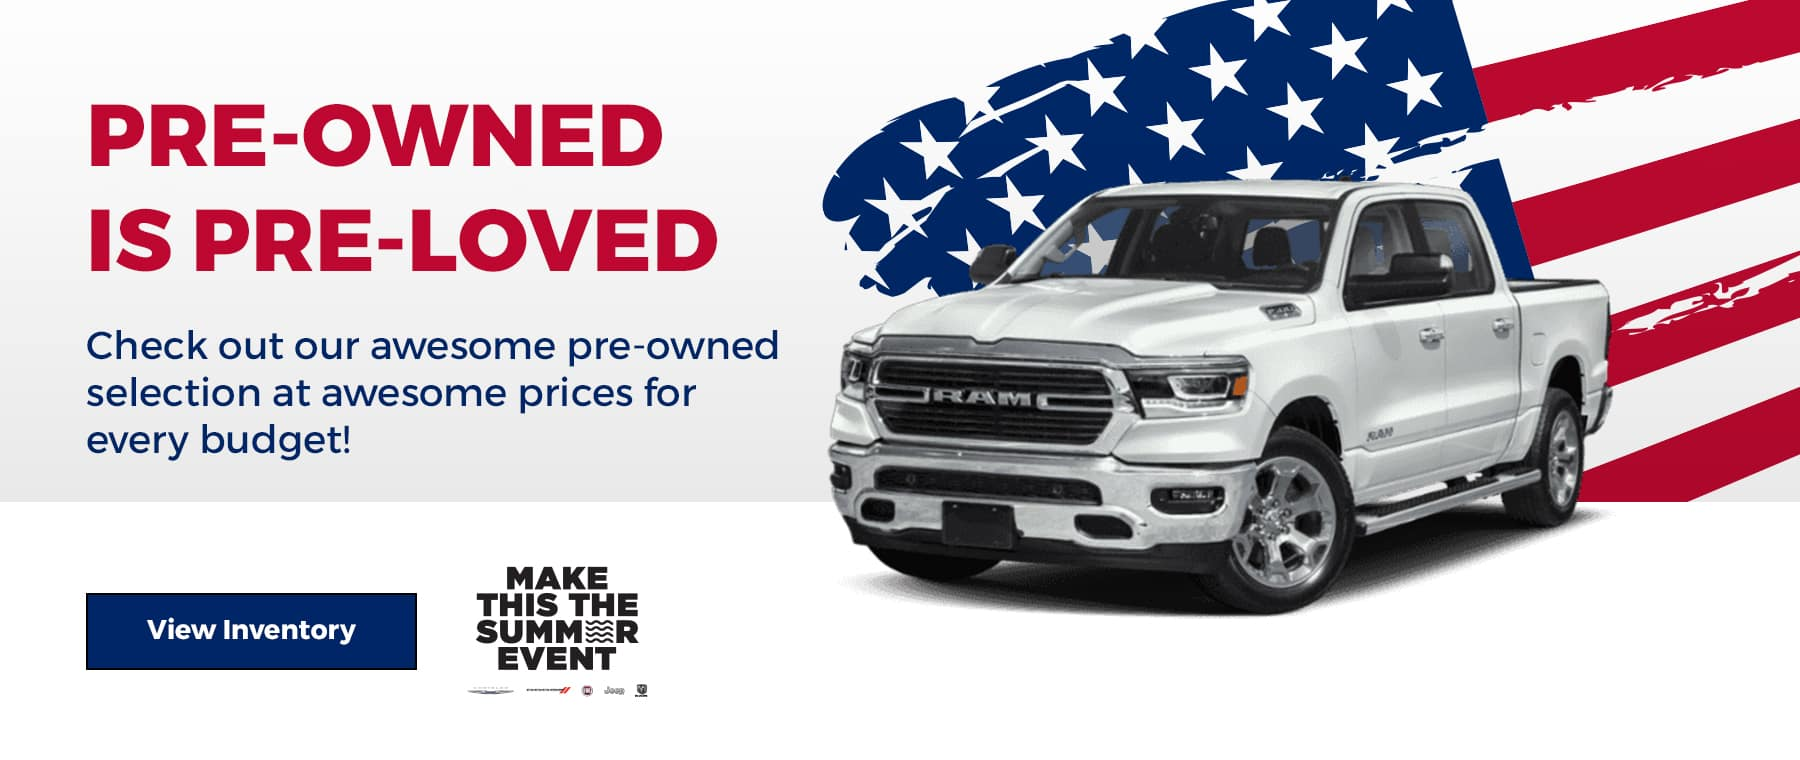 Pre-Owned is Pre-Loved. Check out our awesome pre-owned selection at awesome prices for every budget